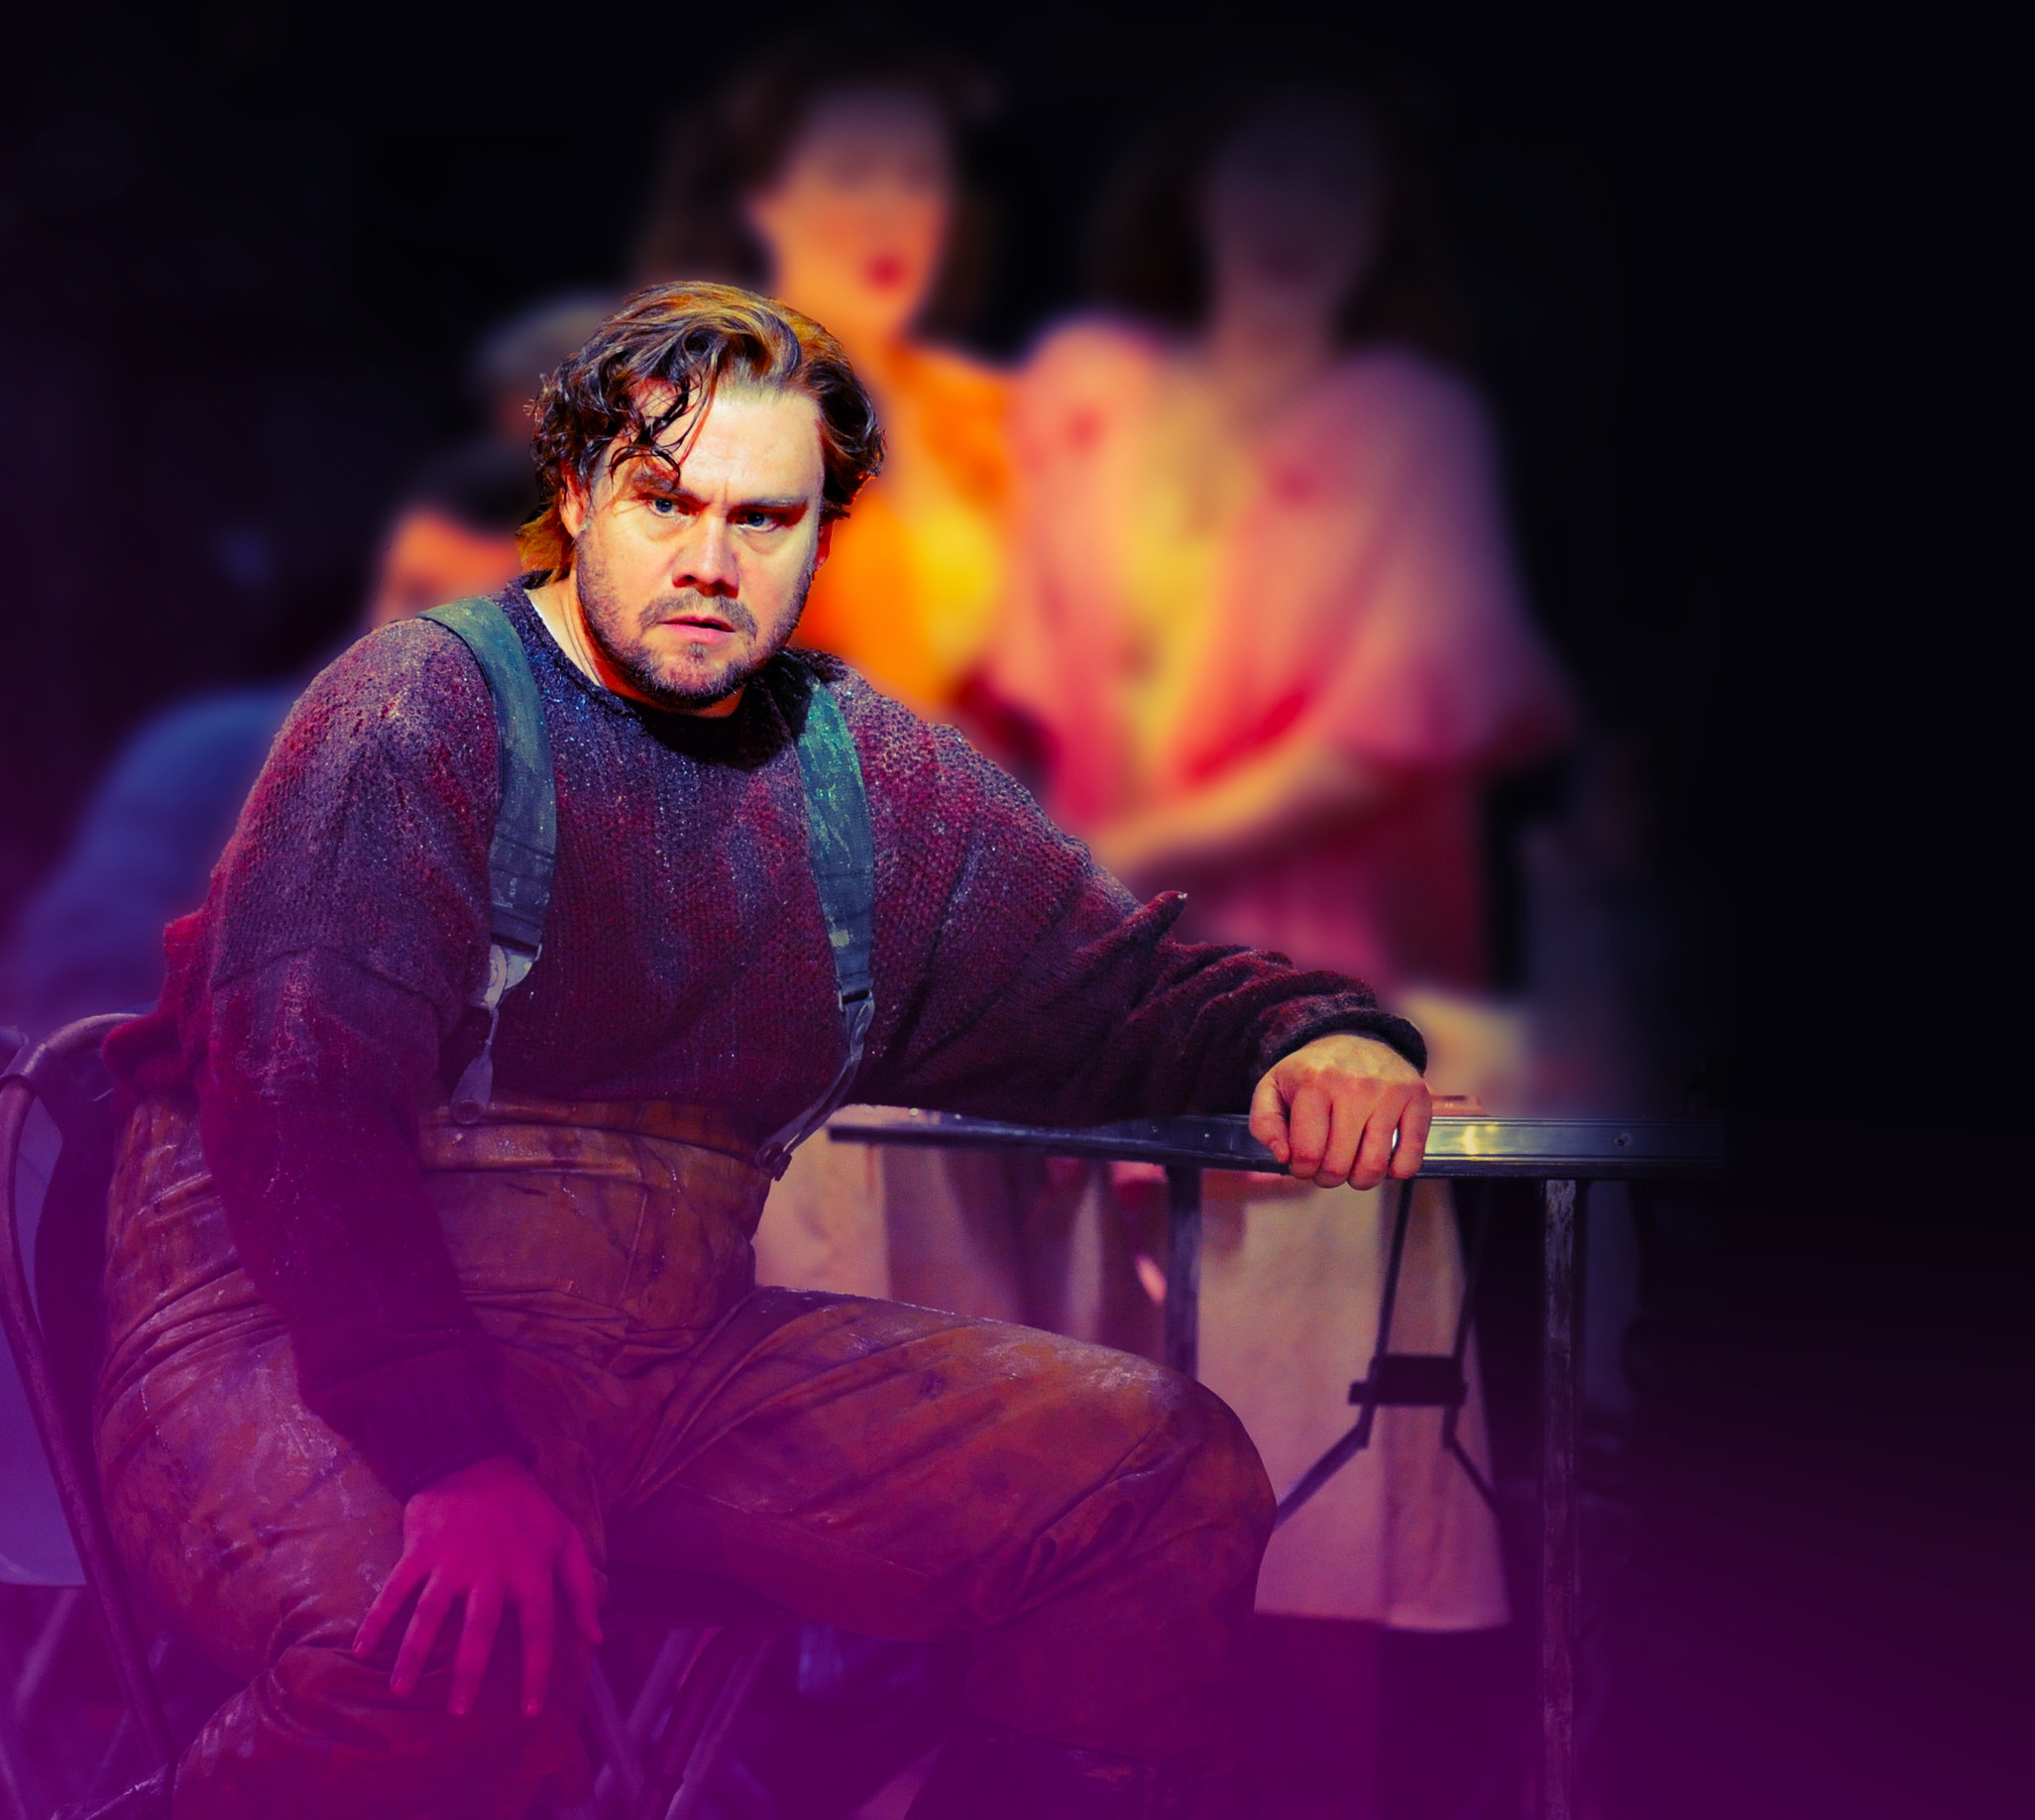 Peter Grimes is a thrilling and moving staging of the great English opera